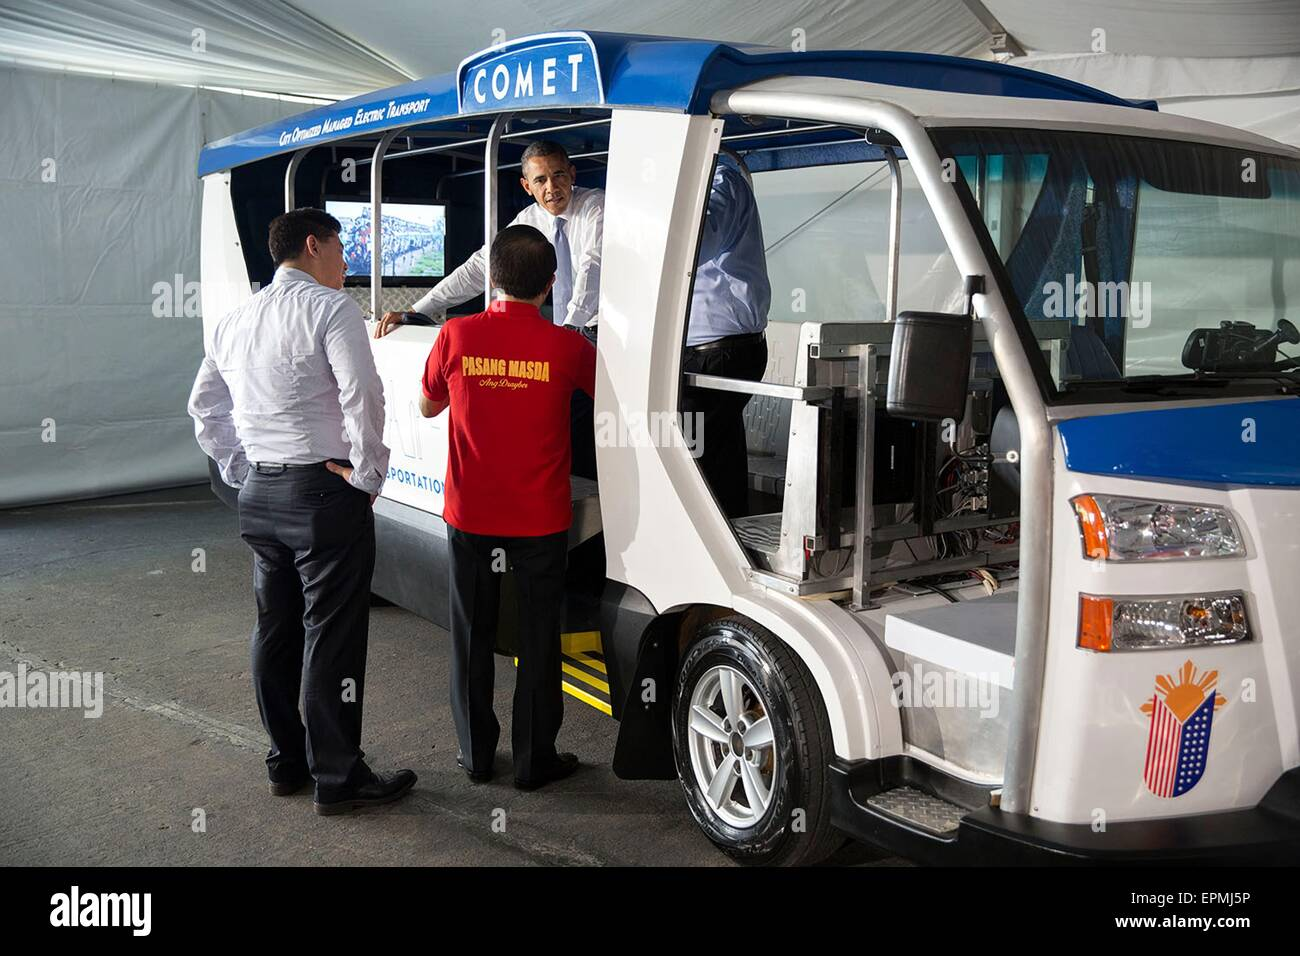 U.S. President Barack Obama views the COMET electric vehicle made by Pangea motors at the Sofitel Philippine Plaza - Stock Image